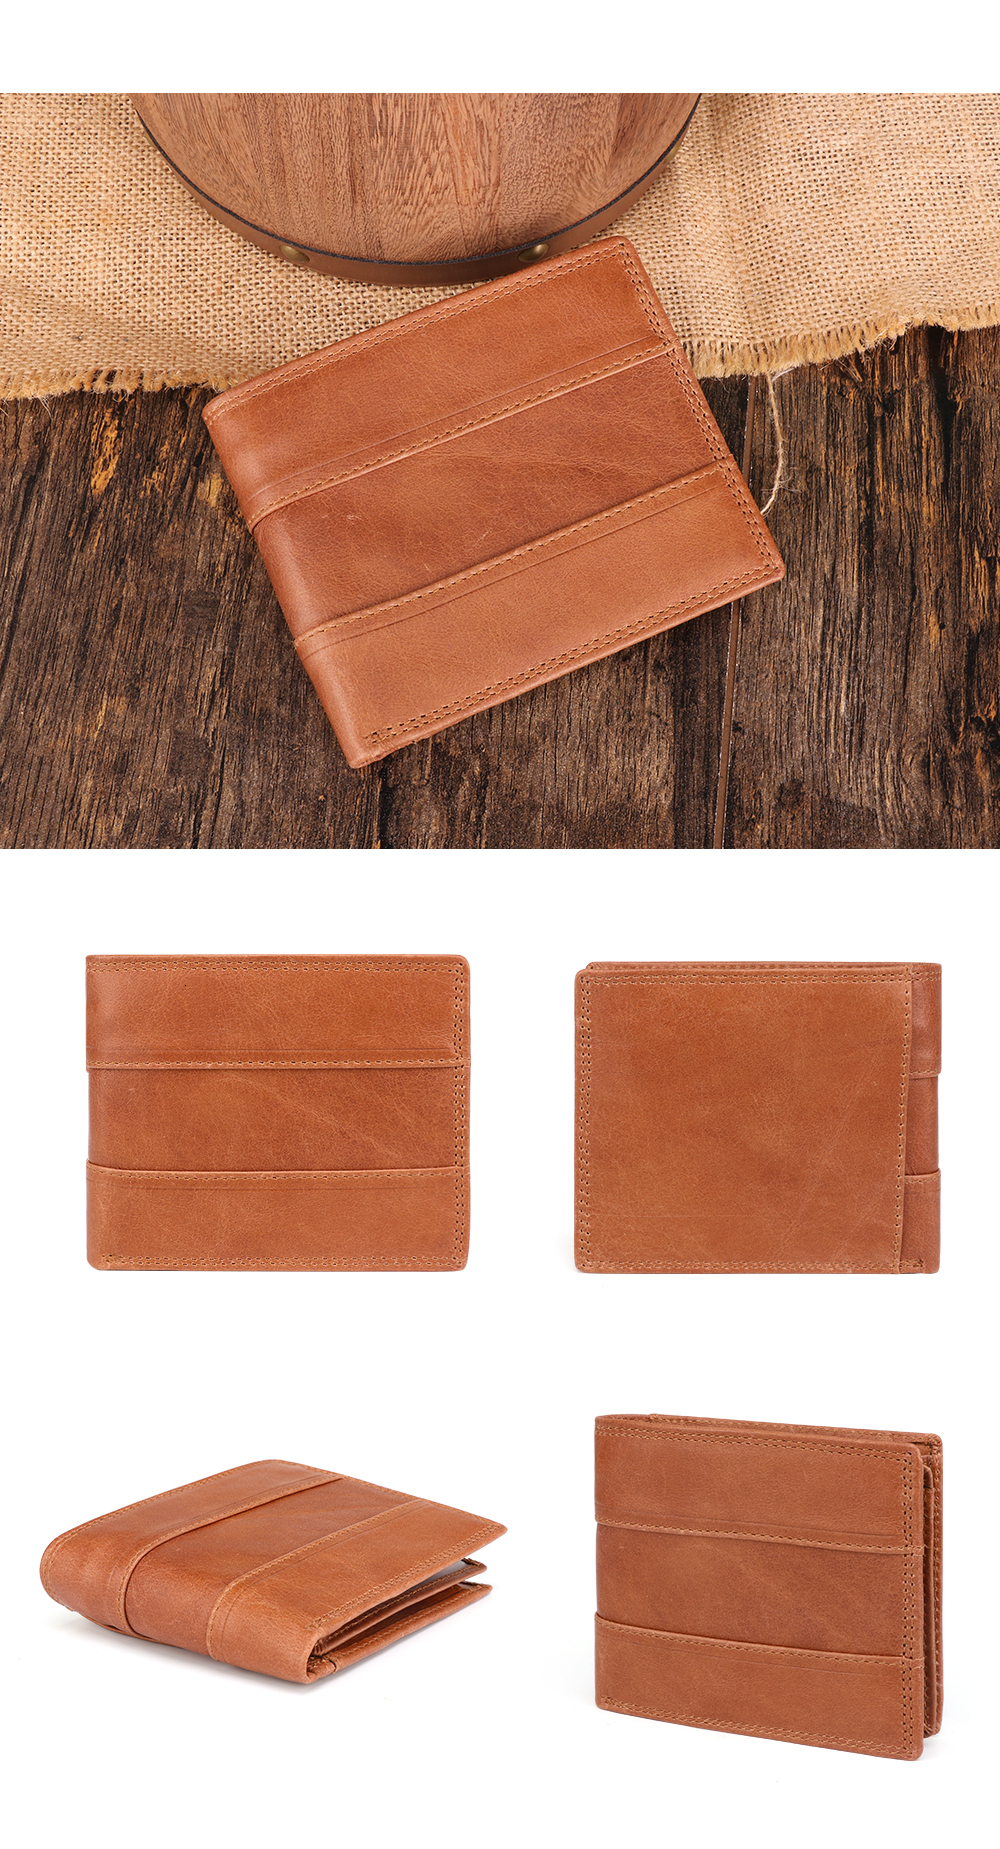 He4c11235b1ff4691af678501be61d2f5c - GENODERN Cow Leather Men Wallets with Coin Pocket Vintage Male Purse Function Brown Genuine Leather Men Wallet with Card Holders